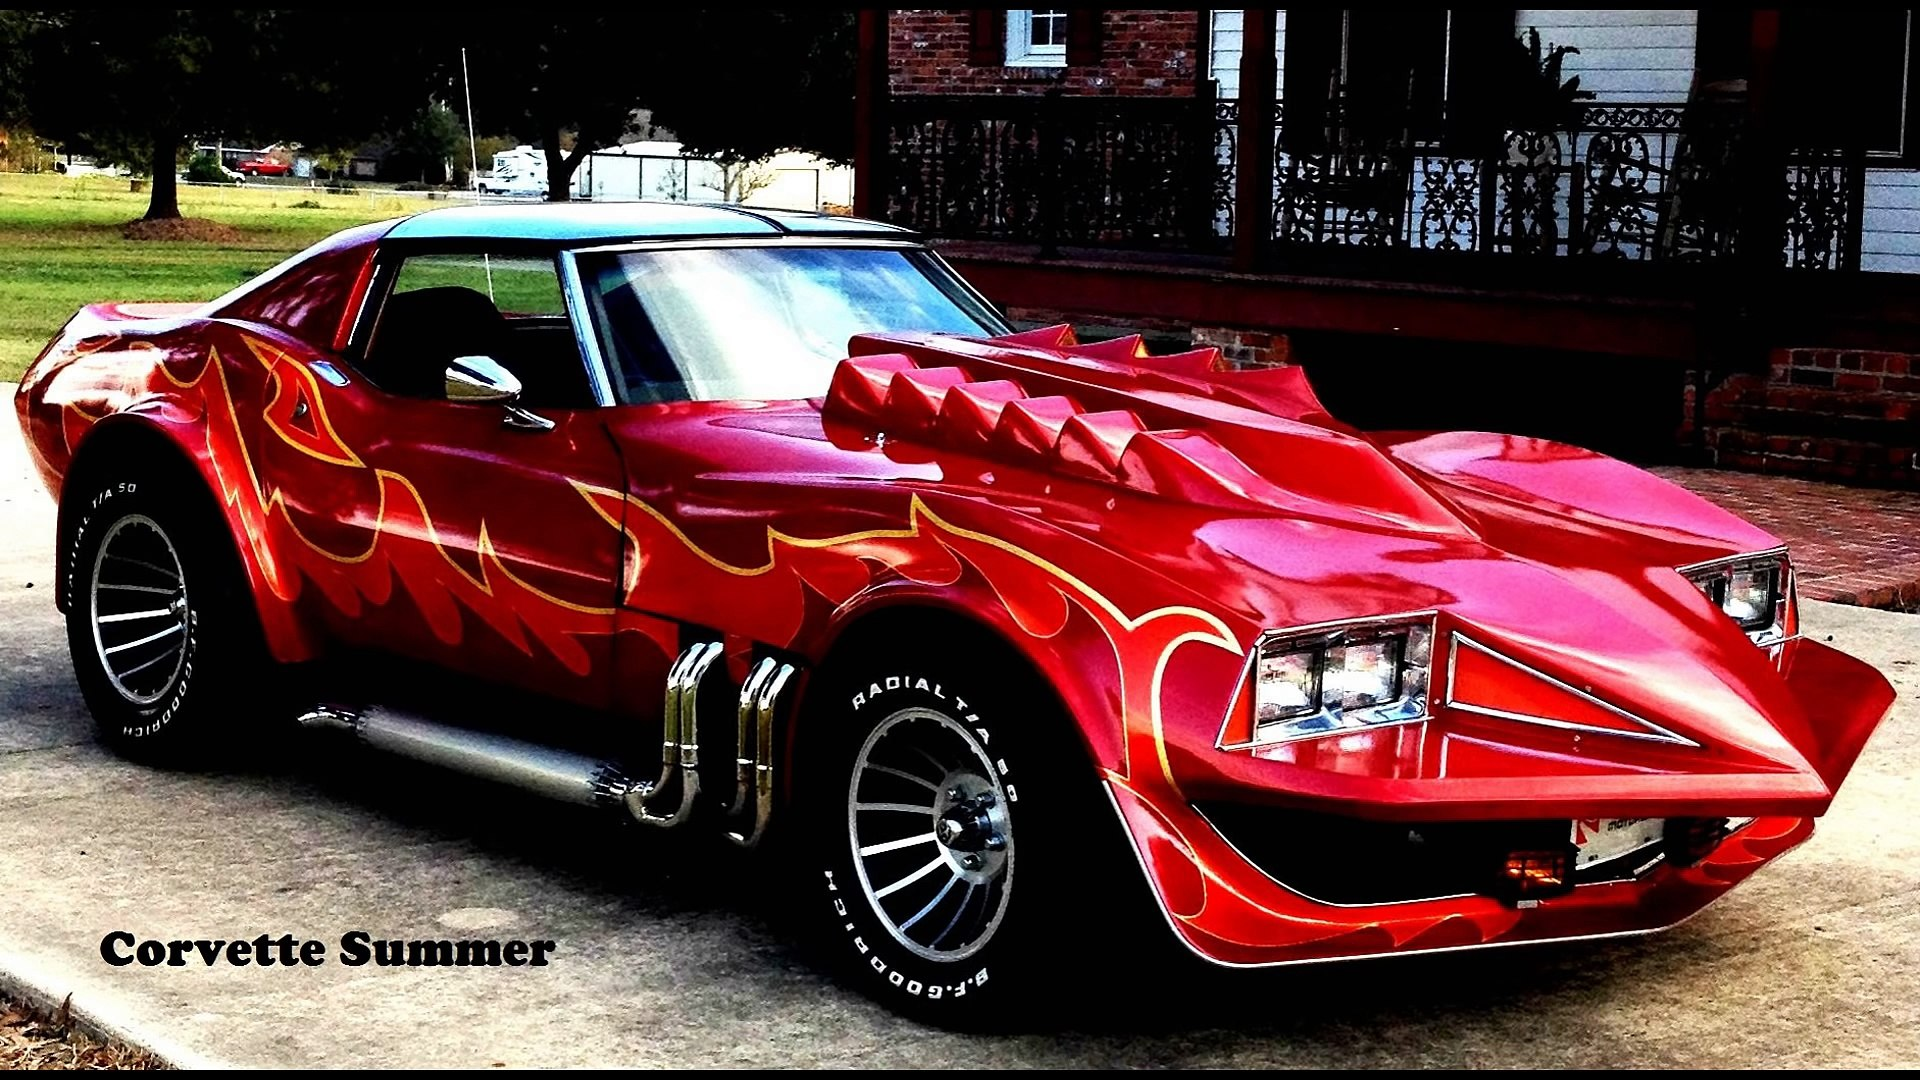 Famous Cars Of TV and Movies